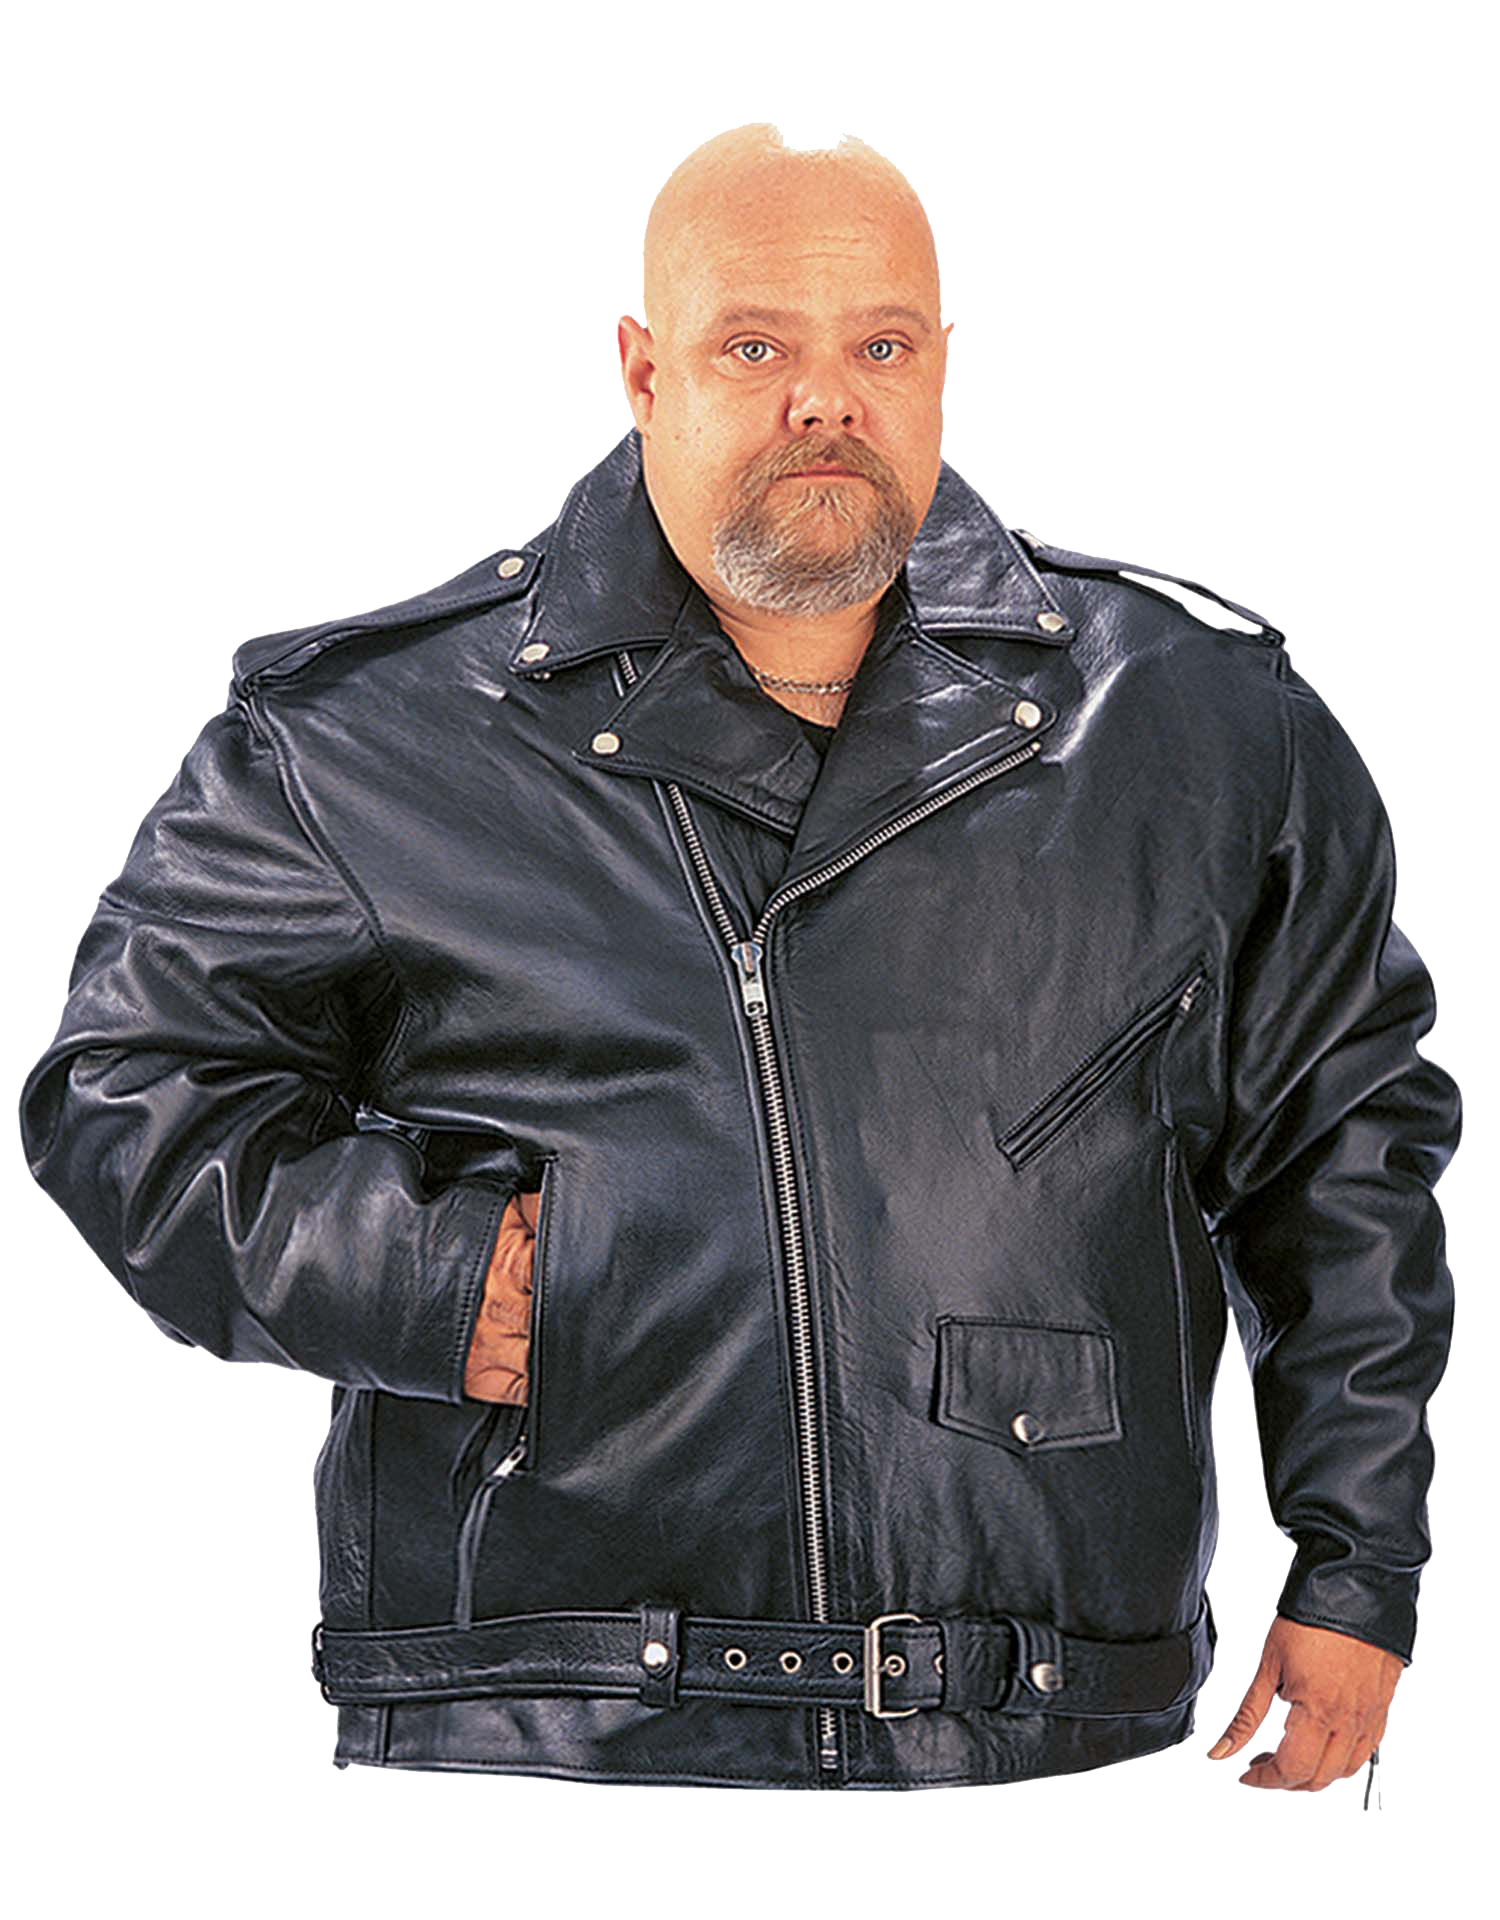 Brand New Now Available In Our Store Unik Men S Big An Check It Out Here Http Leatherlollipop Com P Mens Big And Tall Big And Tall Jackets Big And Tall [ png ]